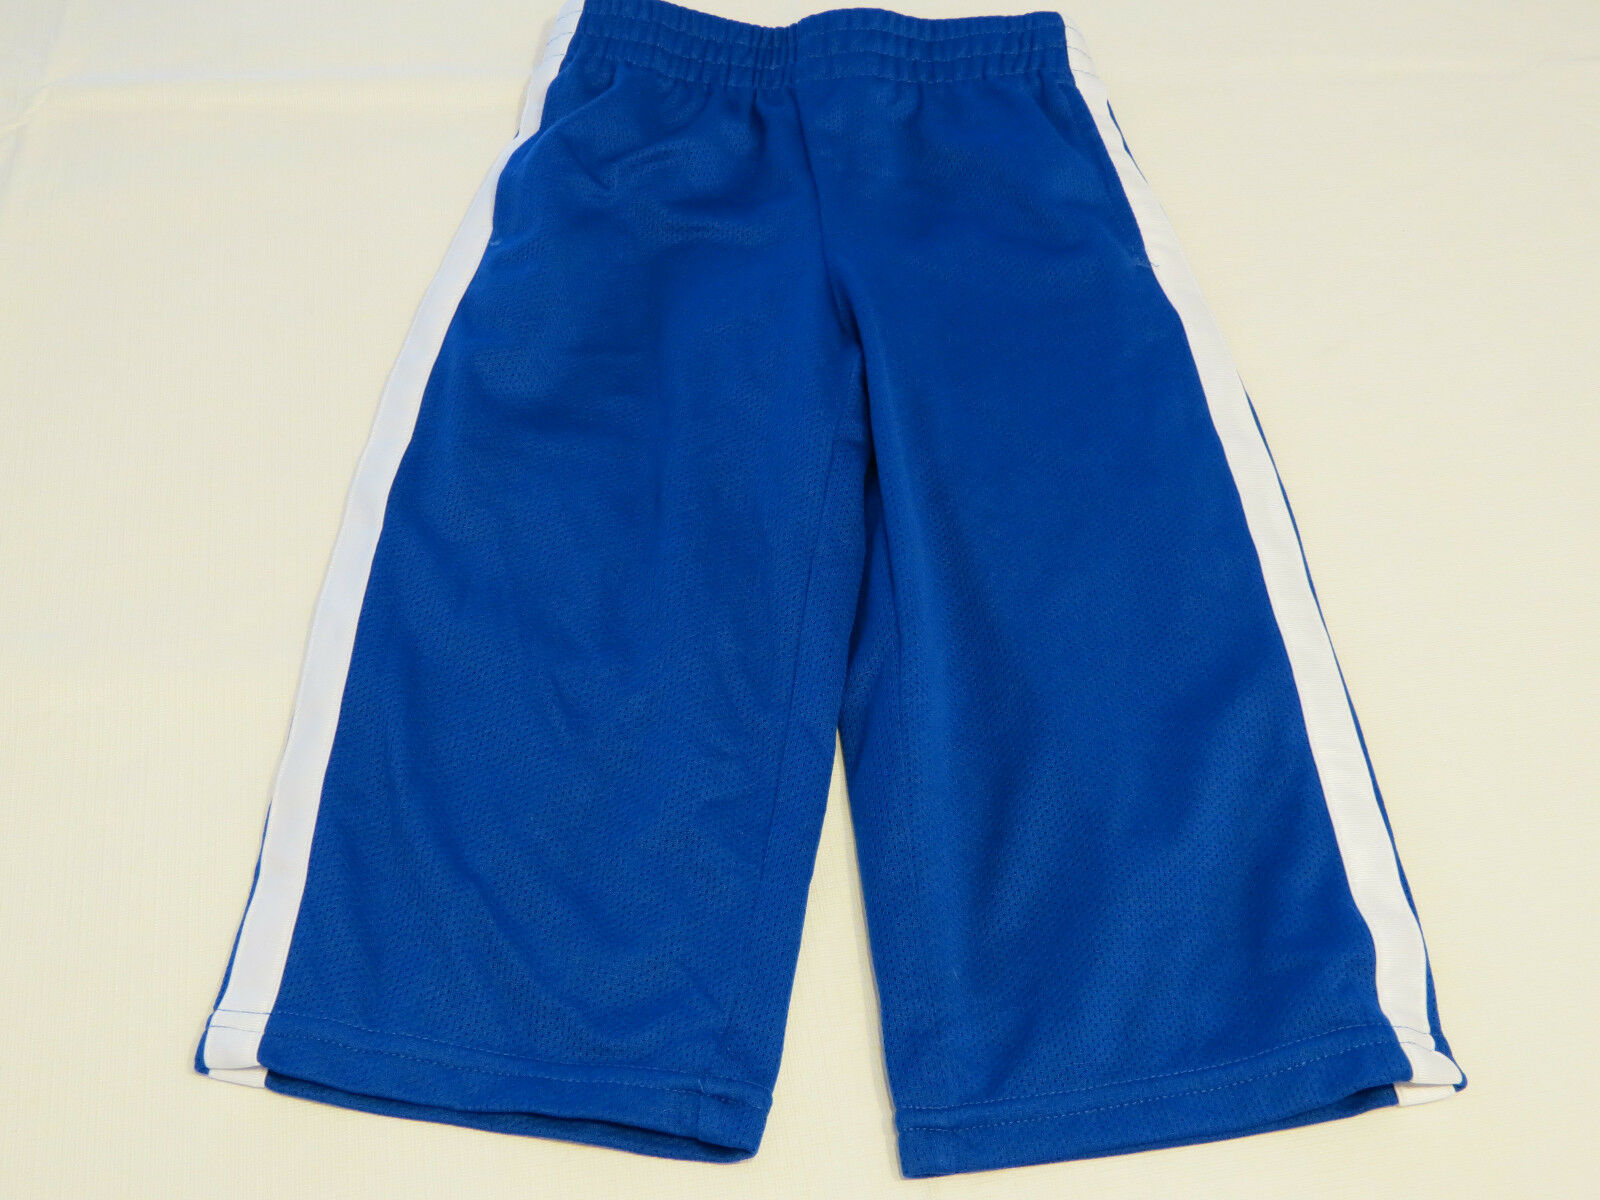 Primary image for The Children's Place active pants 6-9 M baby boys NWT blue white Athletics Dept